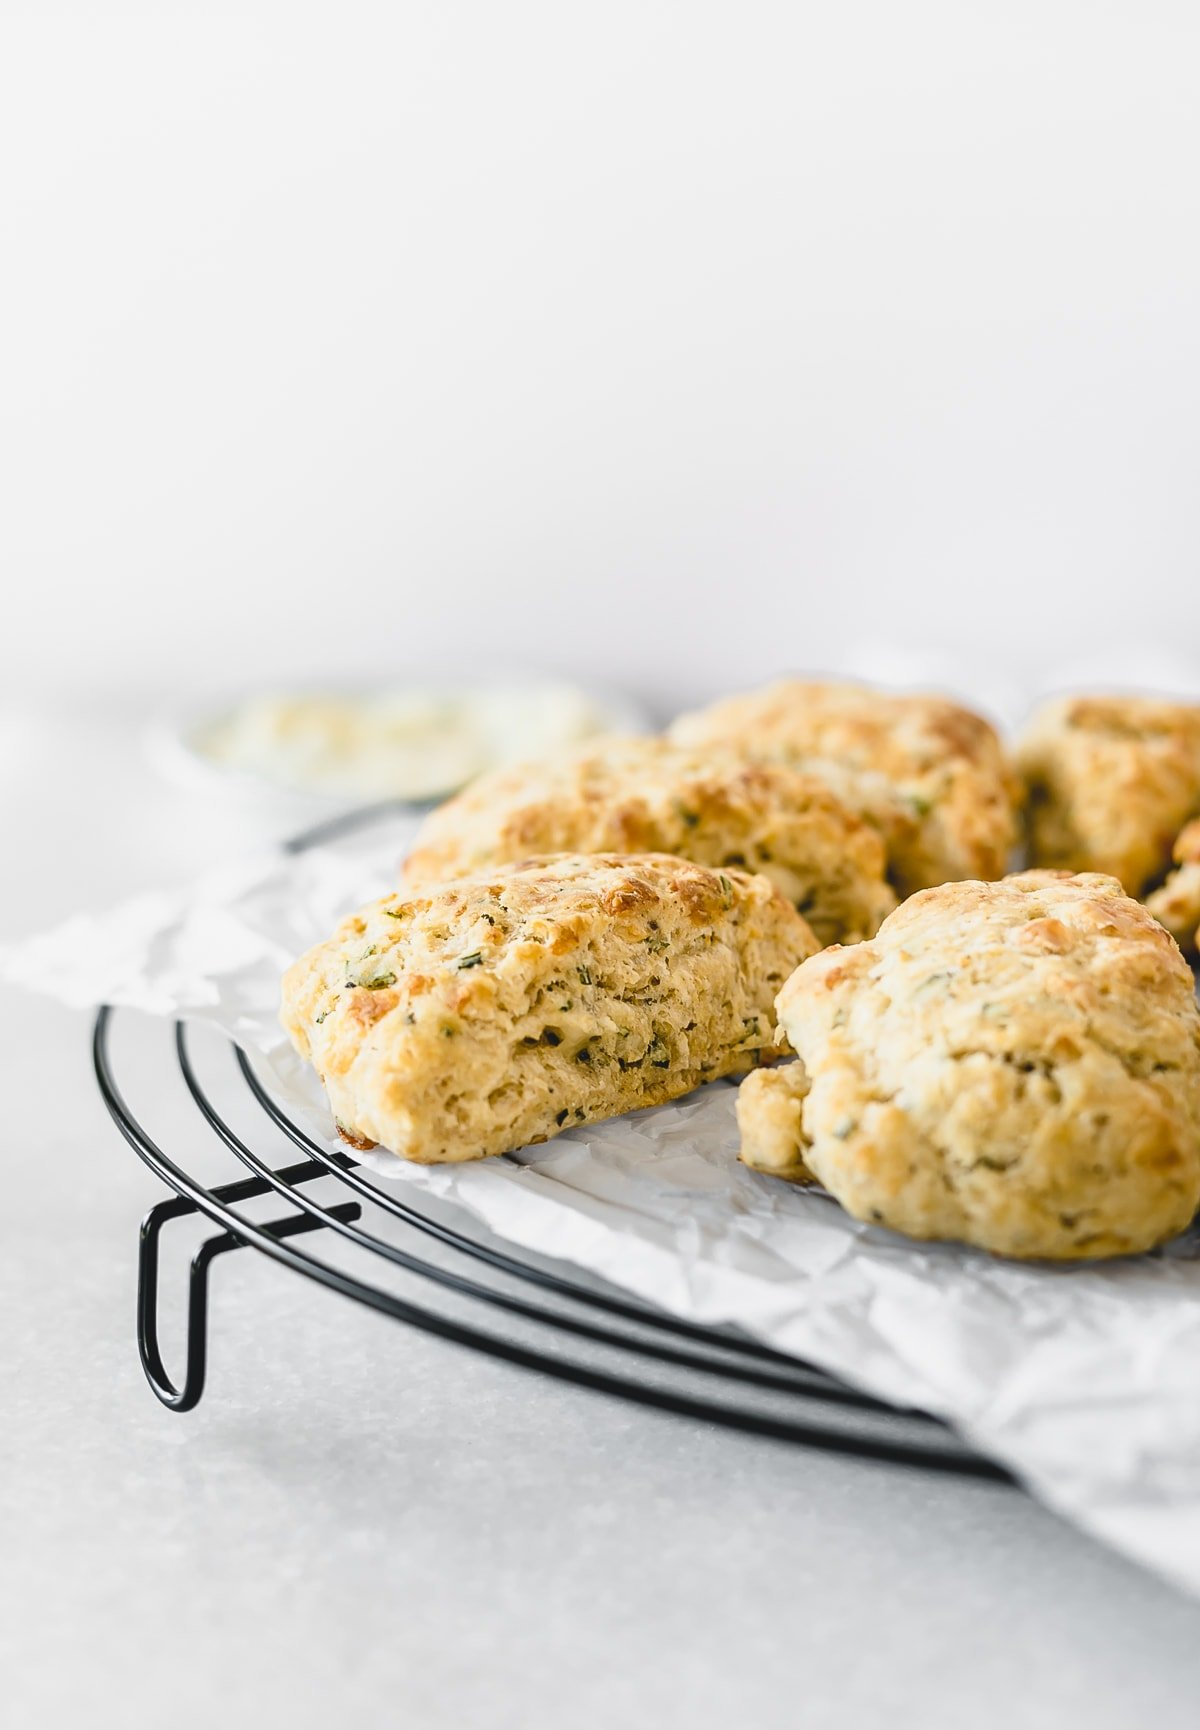 Whole grain Rosemary Parmesan Scones with Herb butter are a delicious savory treat, perfect for a snack with any meal! | via livelytable.com